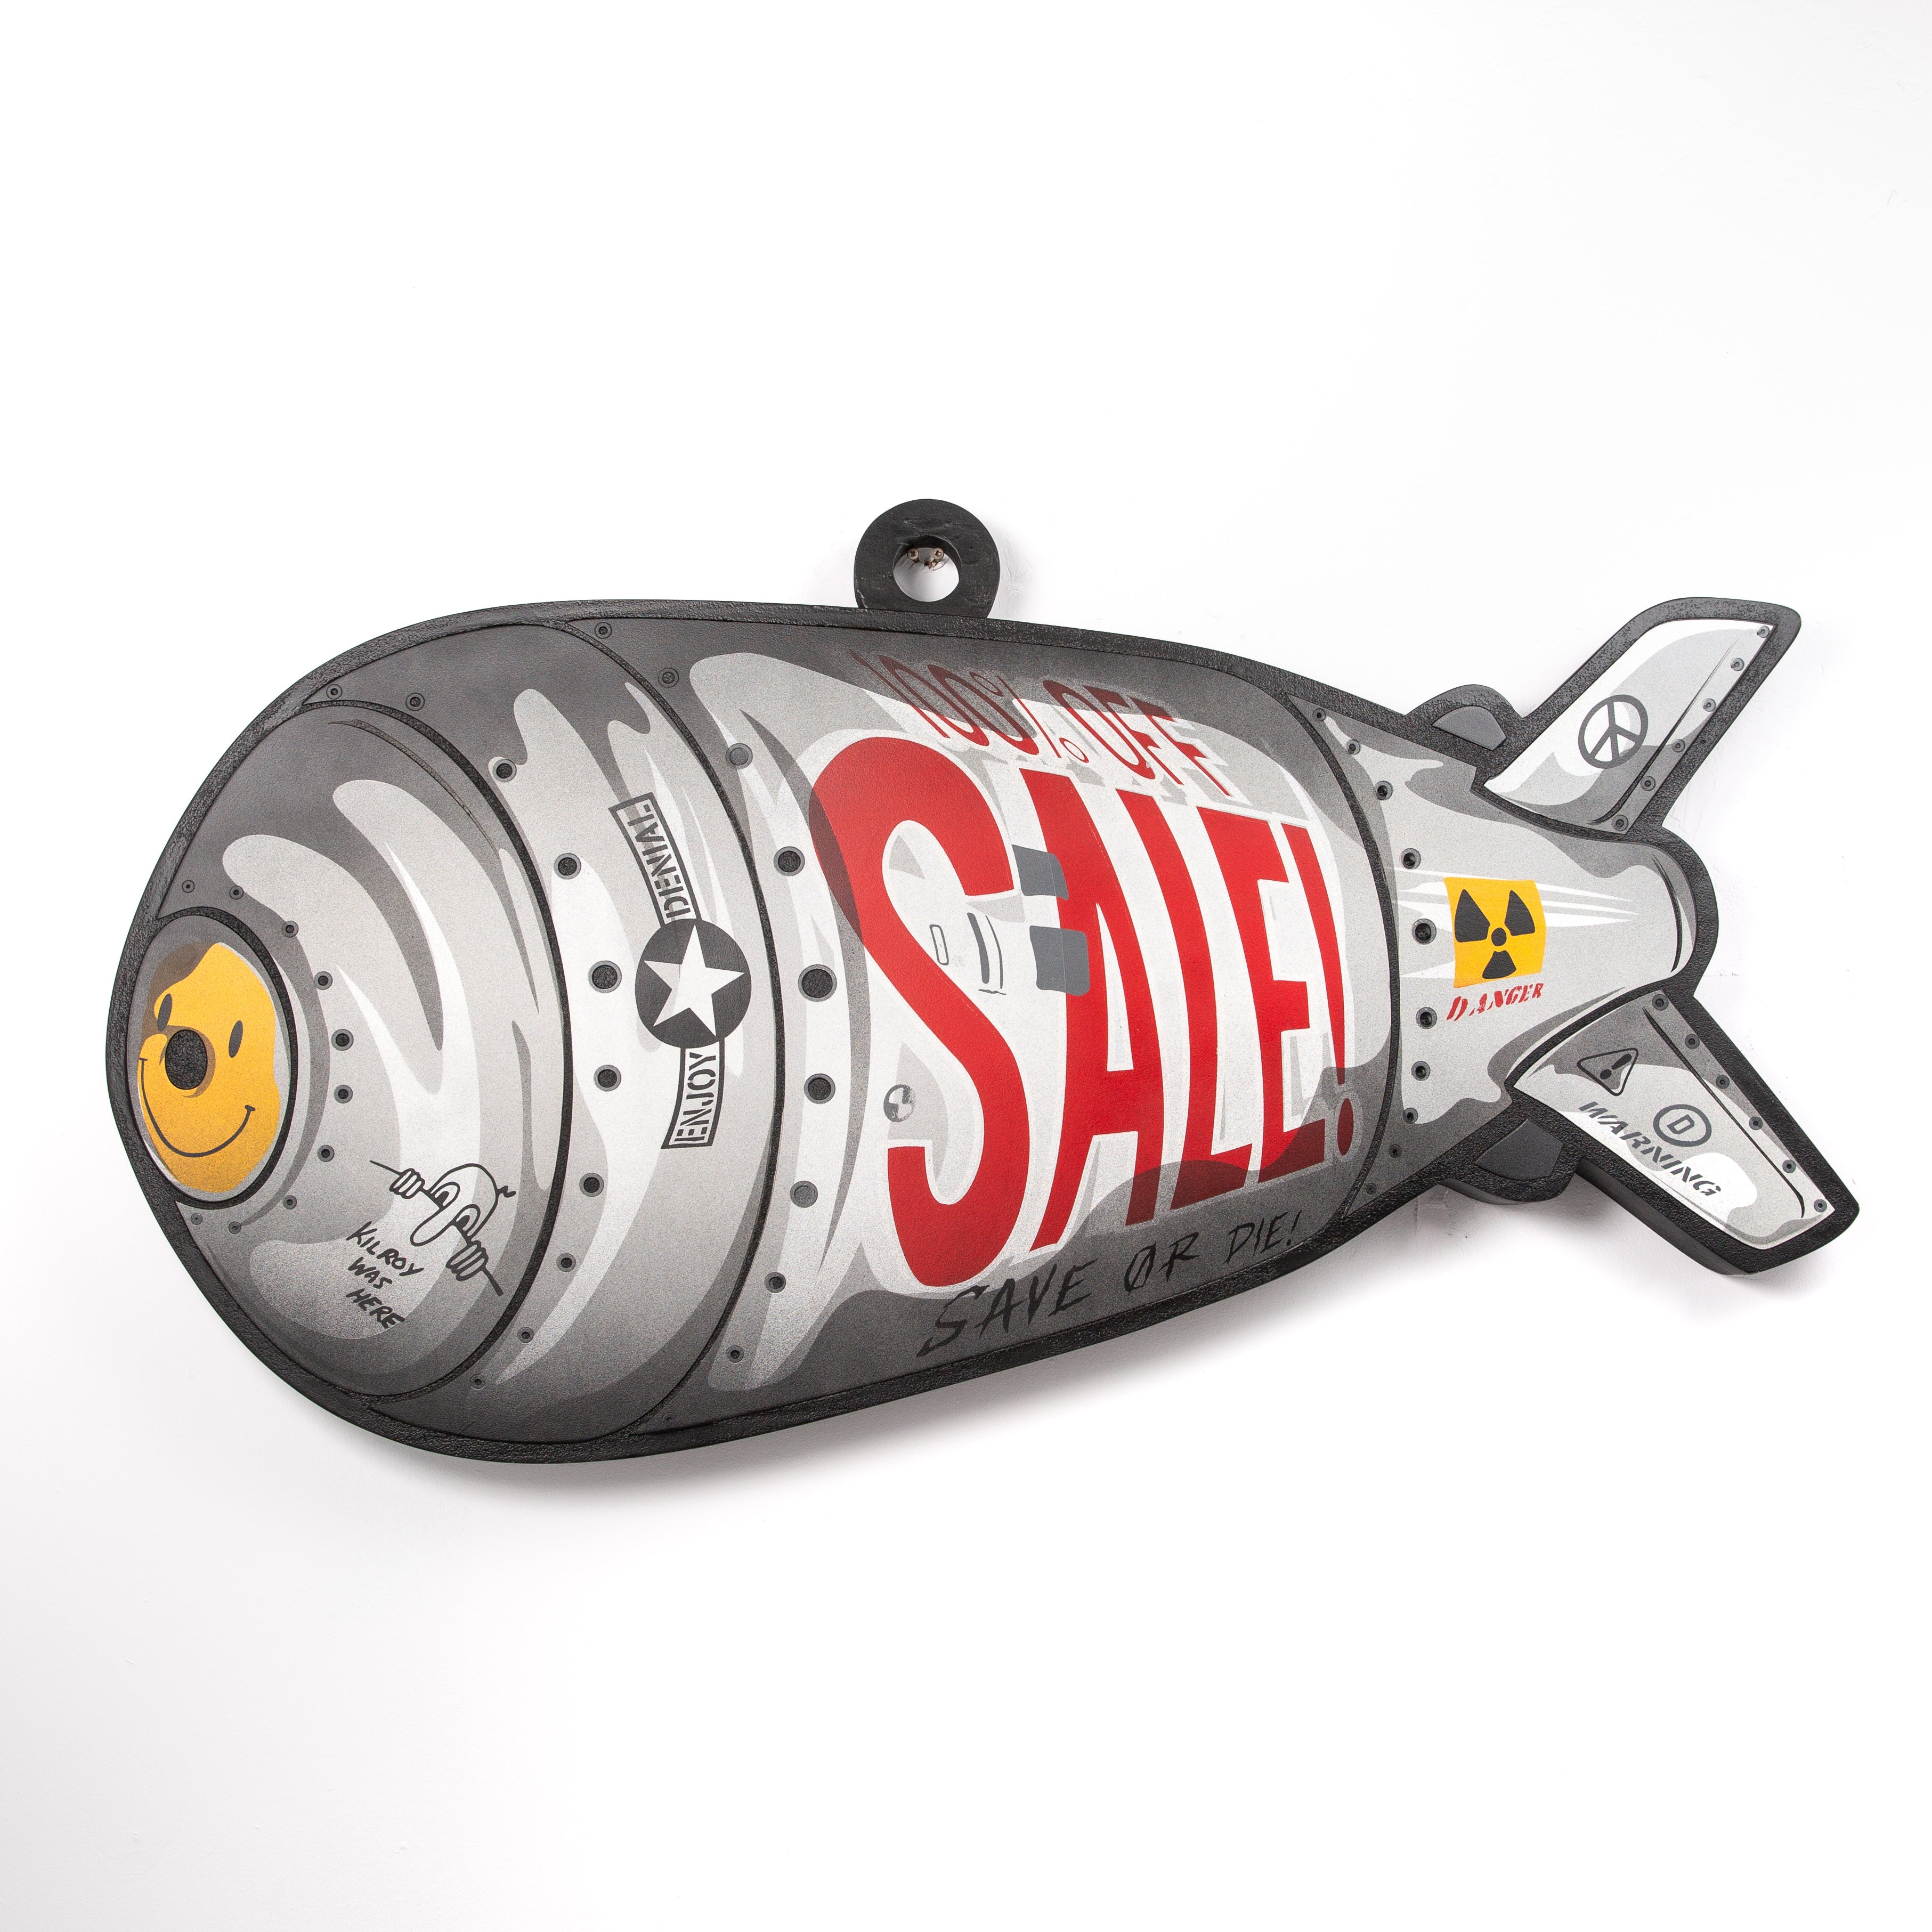 Bomb Sale (2 Sided Spinner)